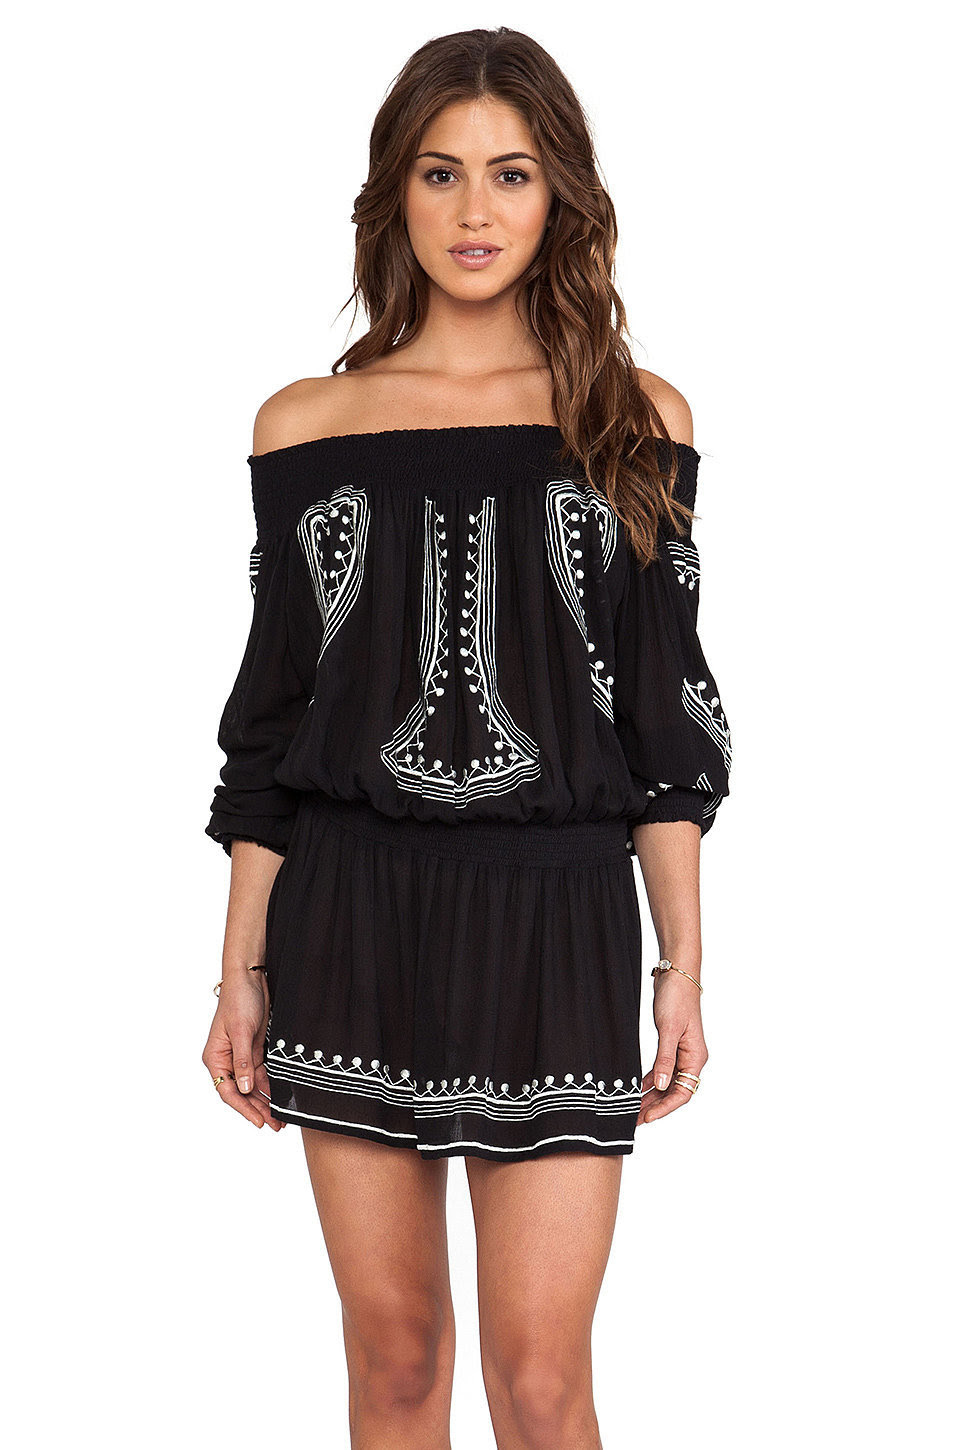 Tularosa Jacqueline Off the Shoulder Top ($148)